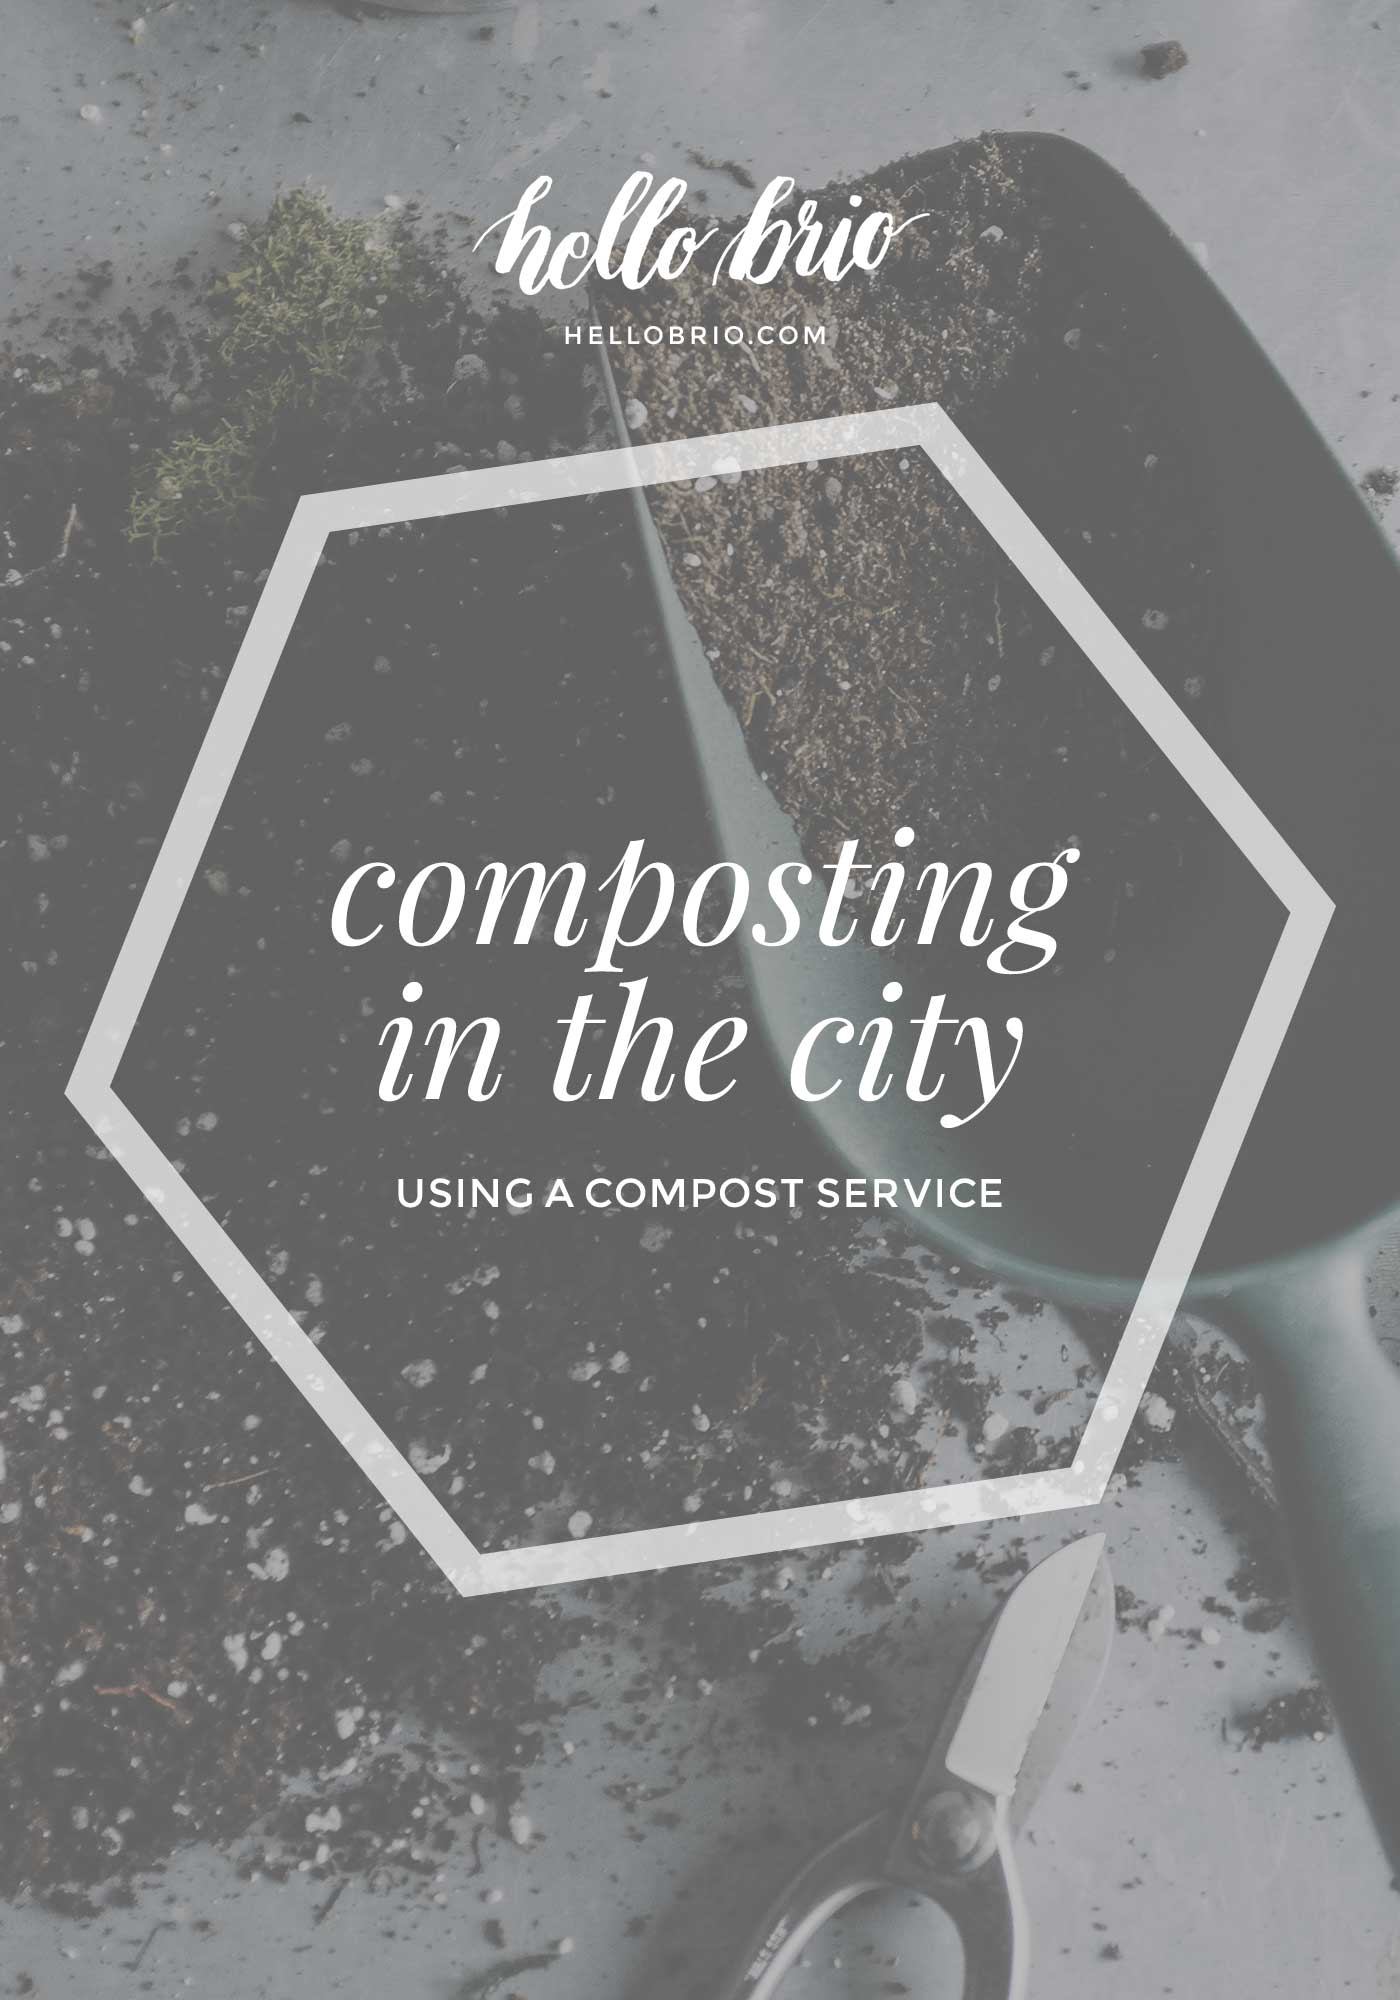 composting-in-the-city.jpg